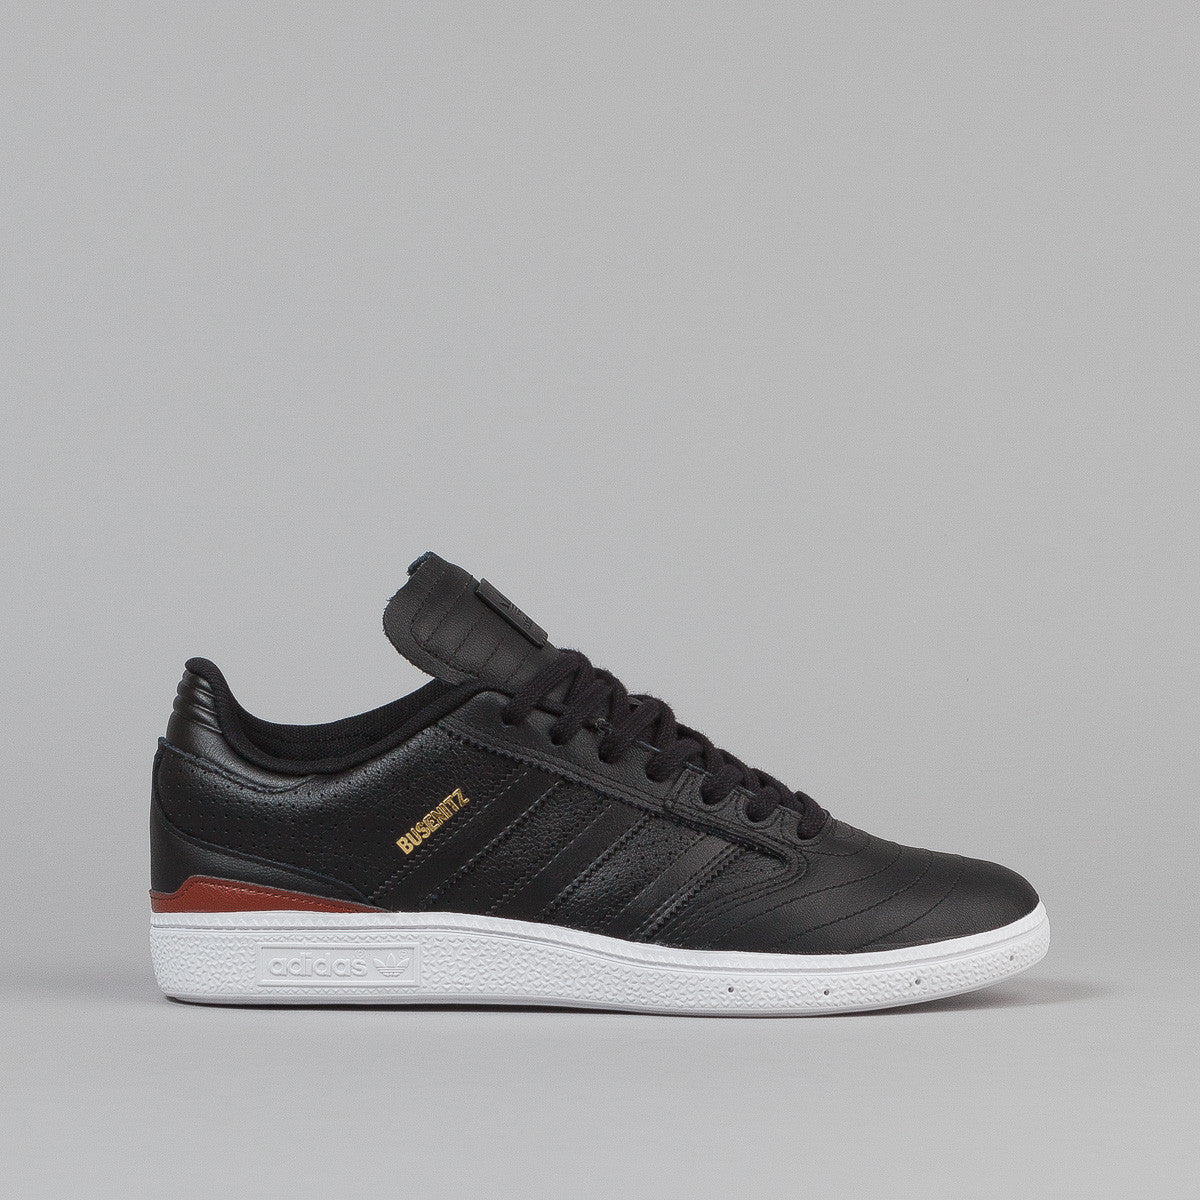 Adidas Busenitz Classified Shoes